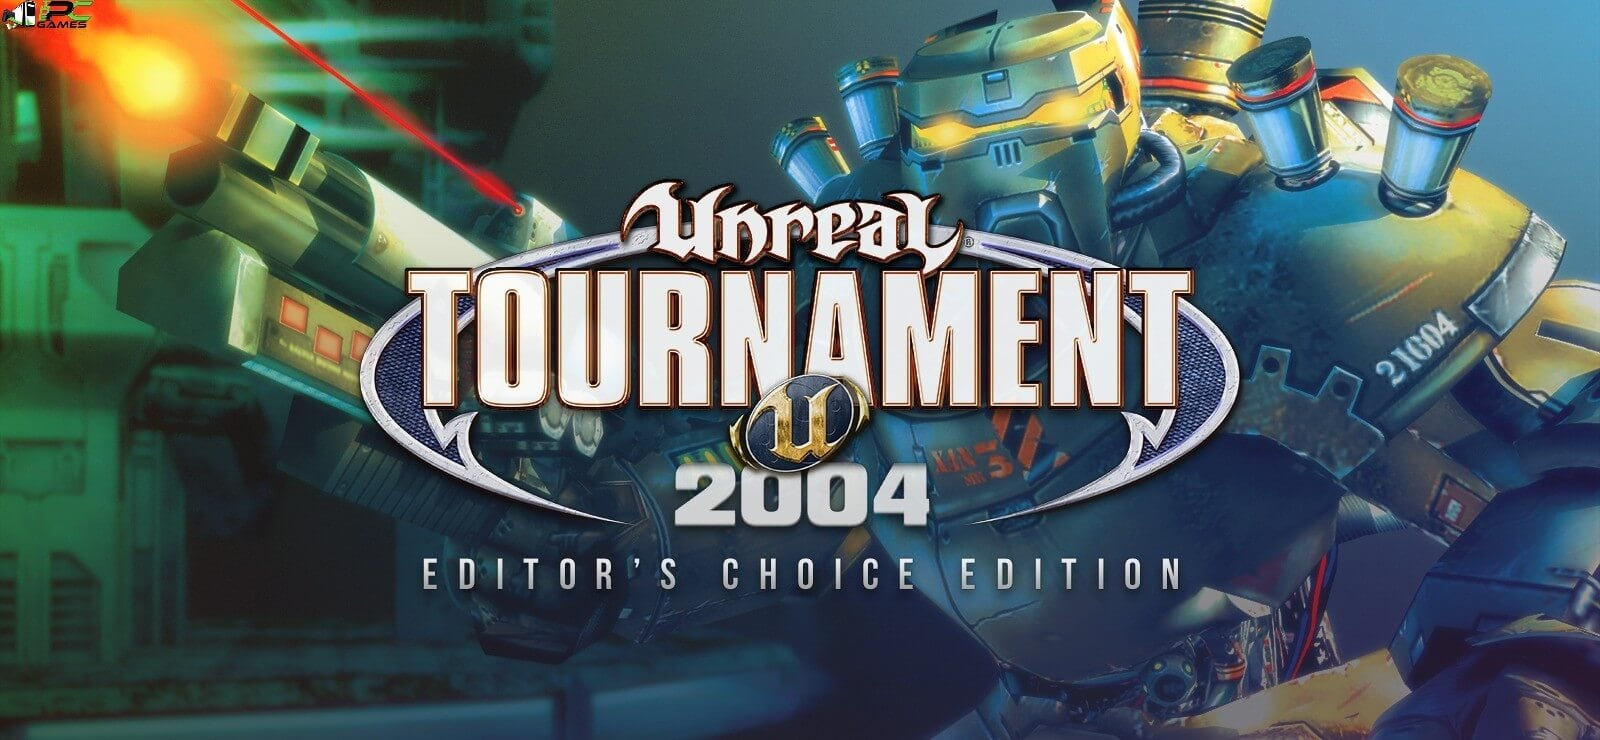 Unreal Tournament 2004 Editor's Choice Edition Free Download